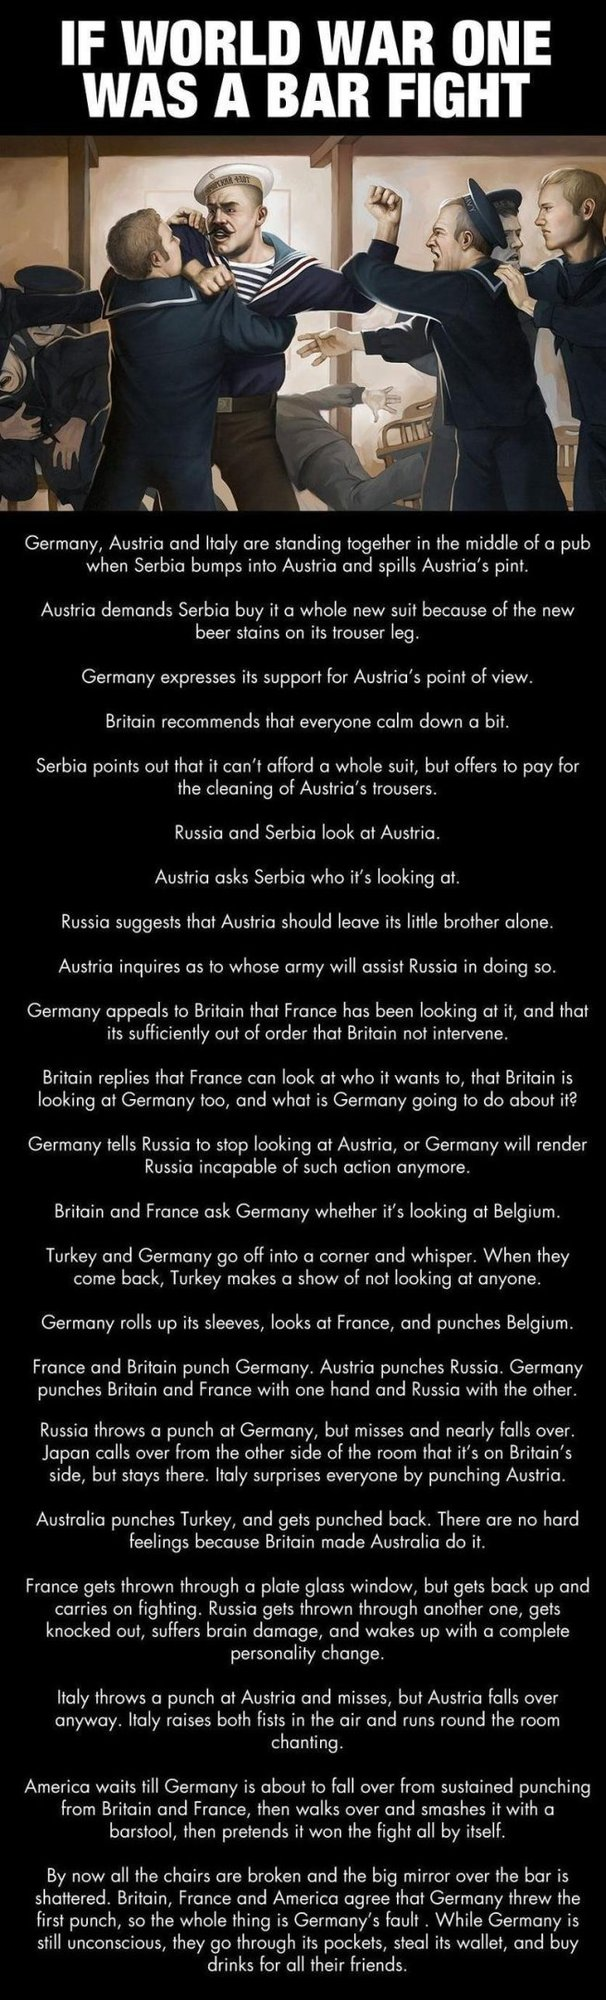 World War I as a Bar Fight